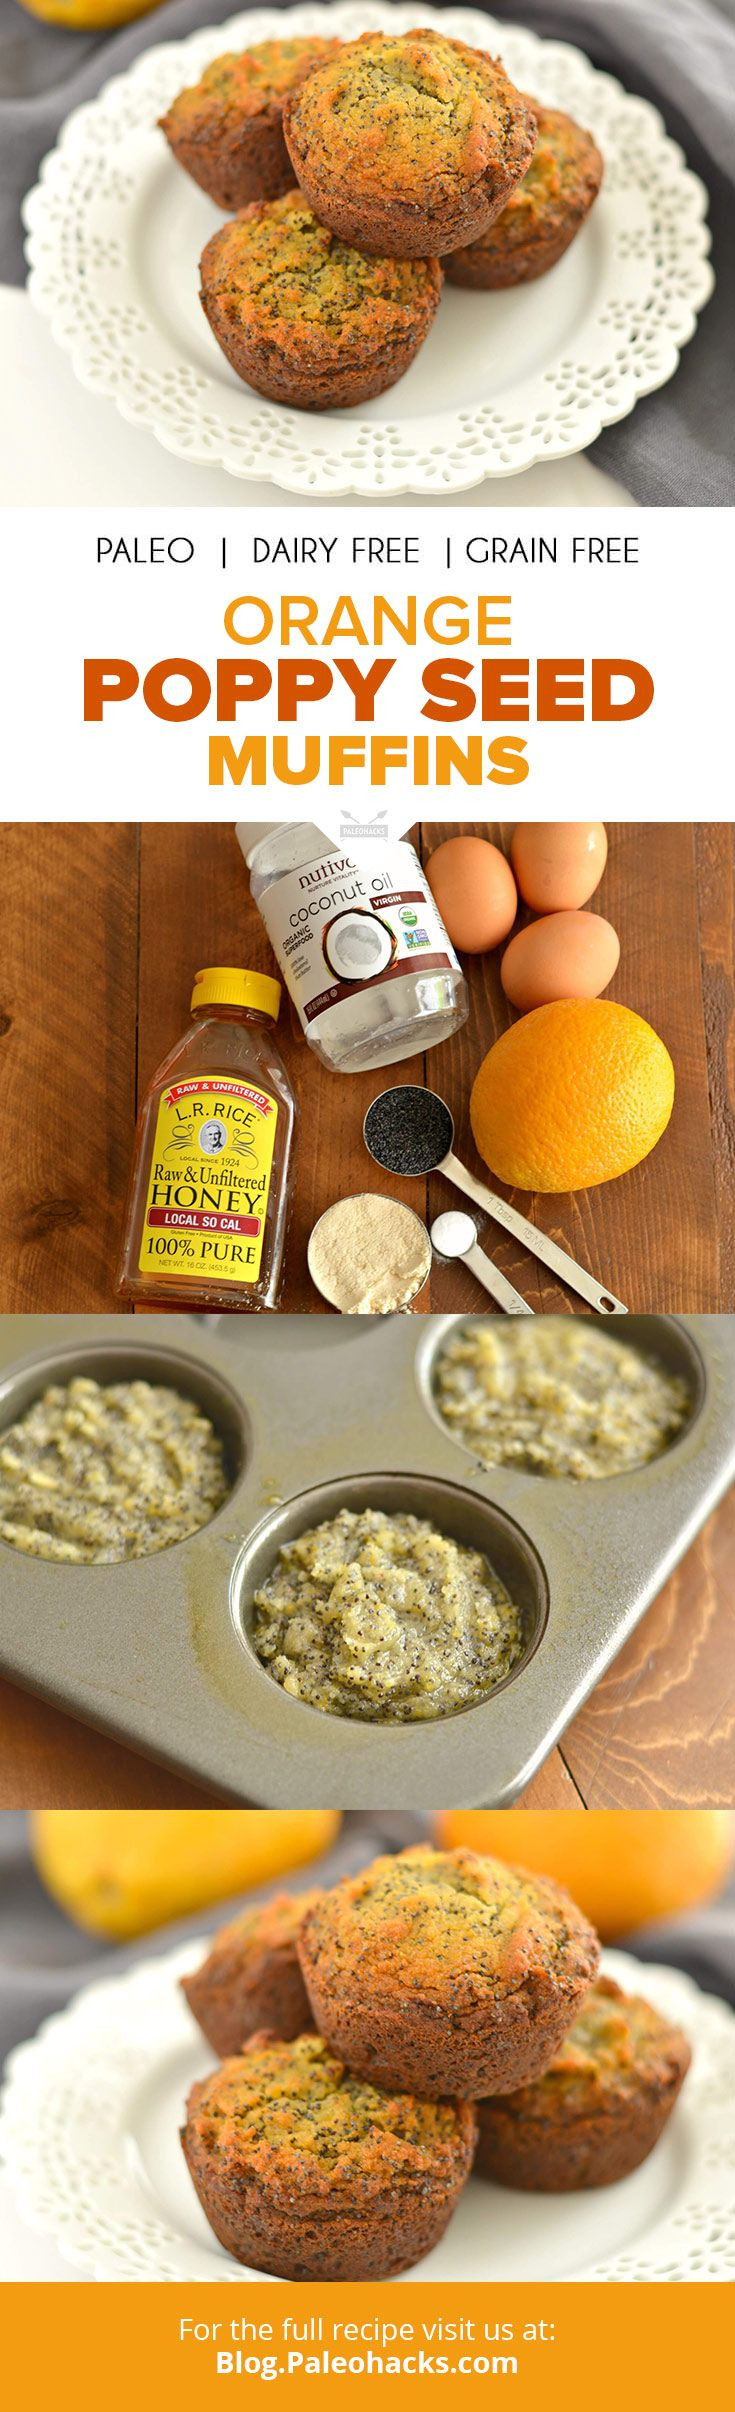 Are you ready for a citrusy Paleo pastry that's bursting with poppy seeds? These light Orange Poppy Seed Muffins are dairy-free, grain-free, and nut-free. They're a paleo-friendly snack you can take on the go or have for breakfast! For the full recipe visit us here: http://paleo.co/OPSMuffins